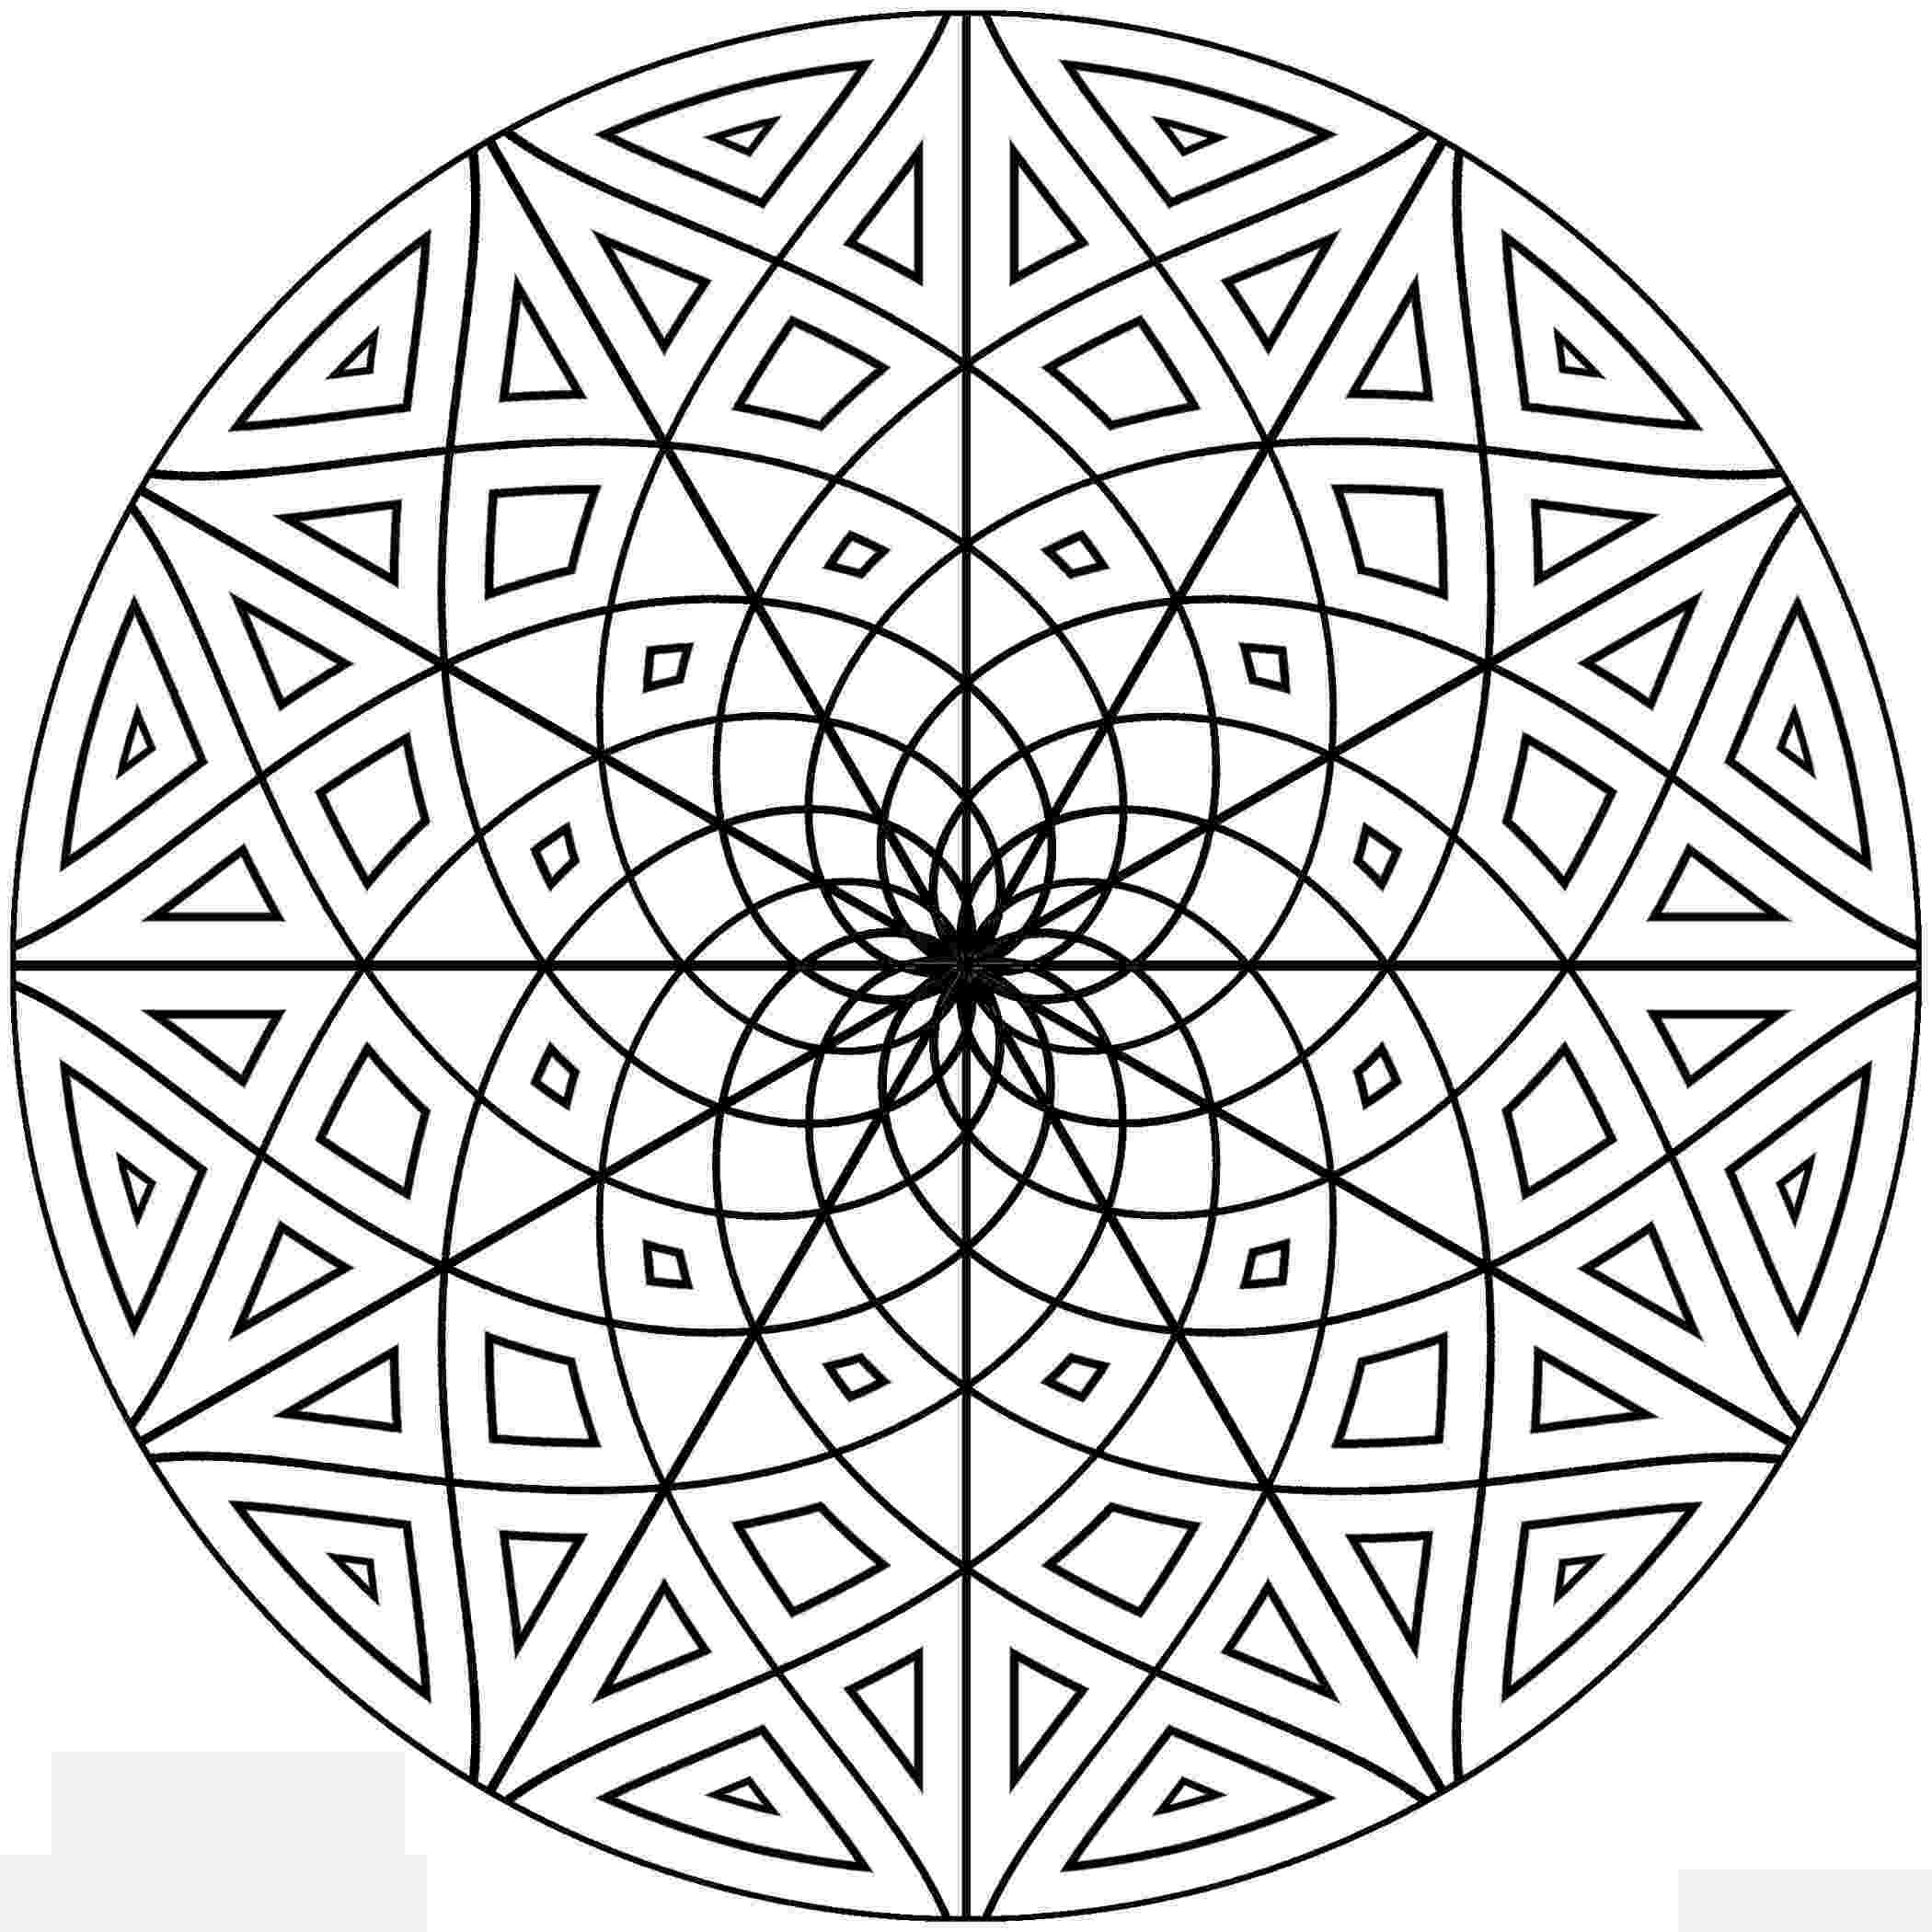 coloring pages patterns colouring designs thelinoprinter pages coloring patterns